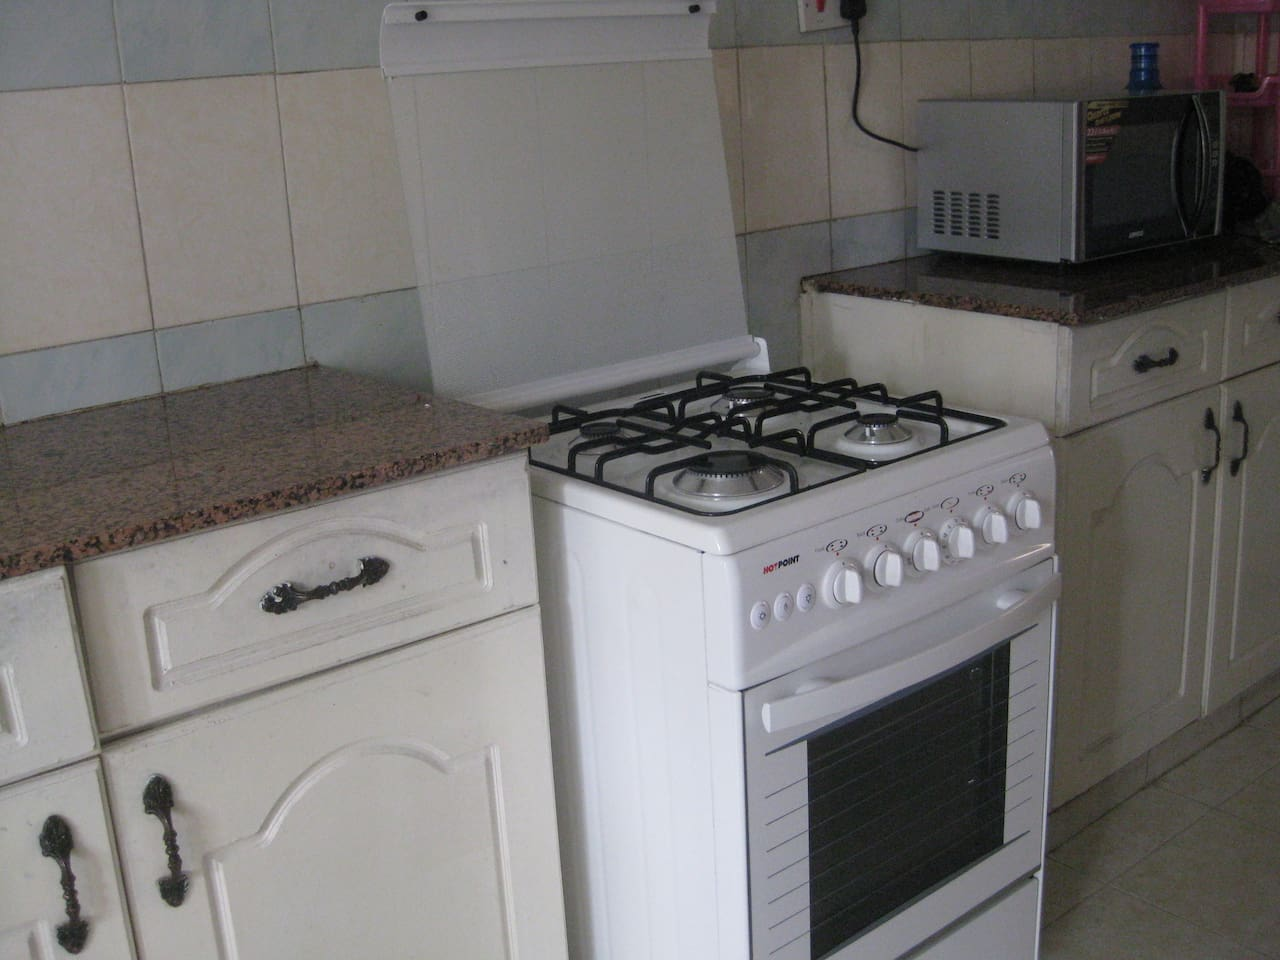 fitted kitchen with a gas cooker, microwave, electric kettle and a toaster